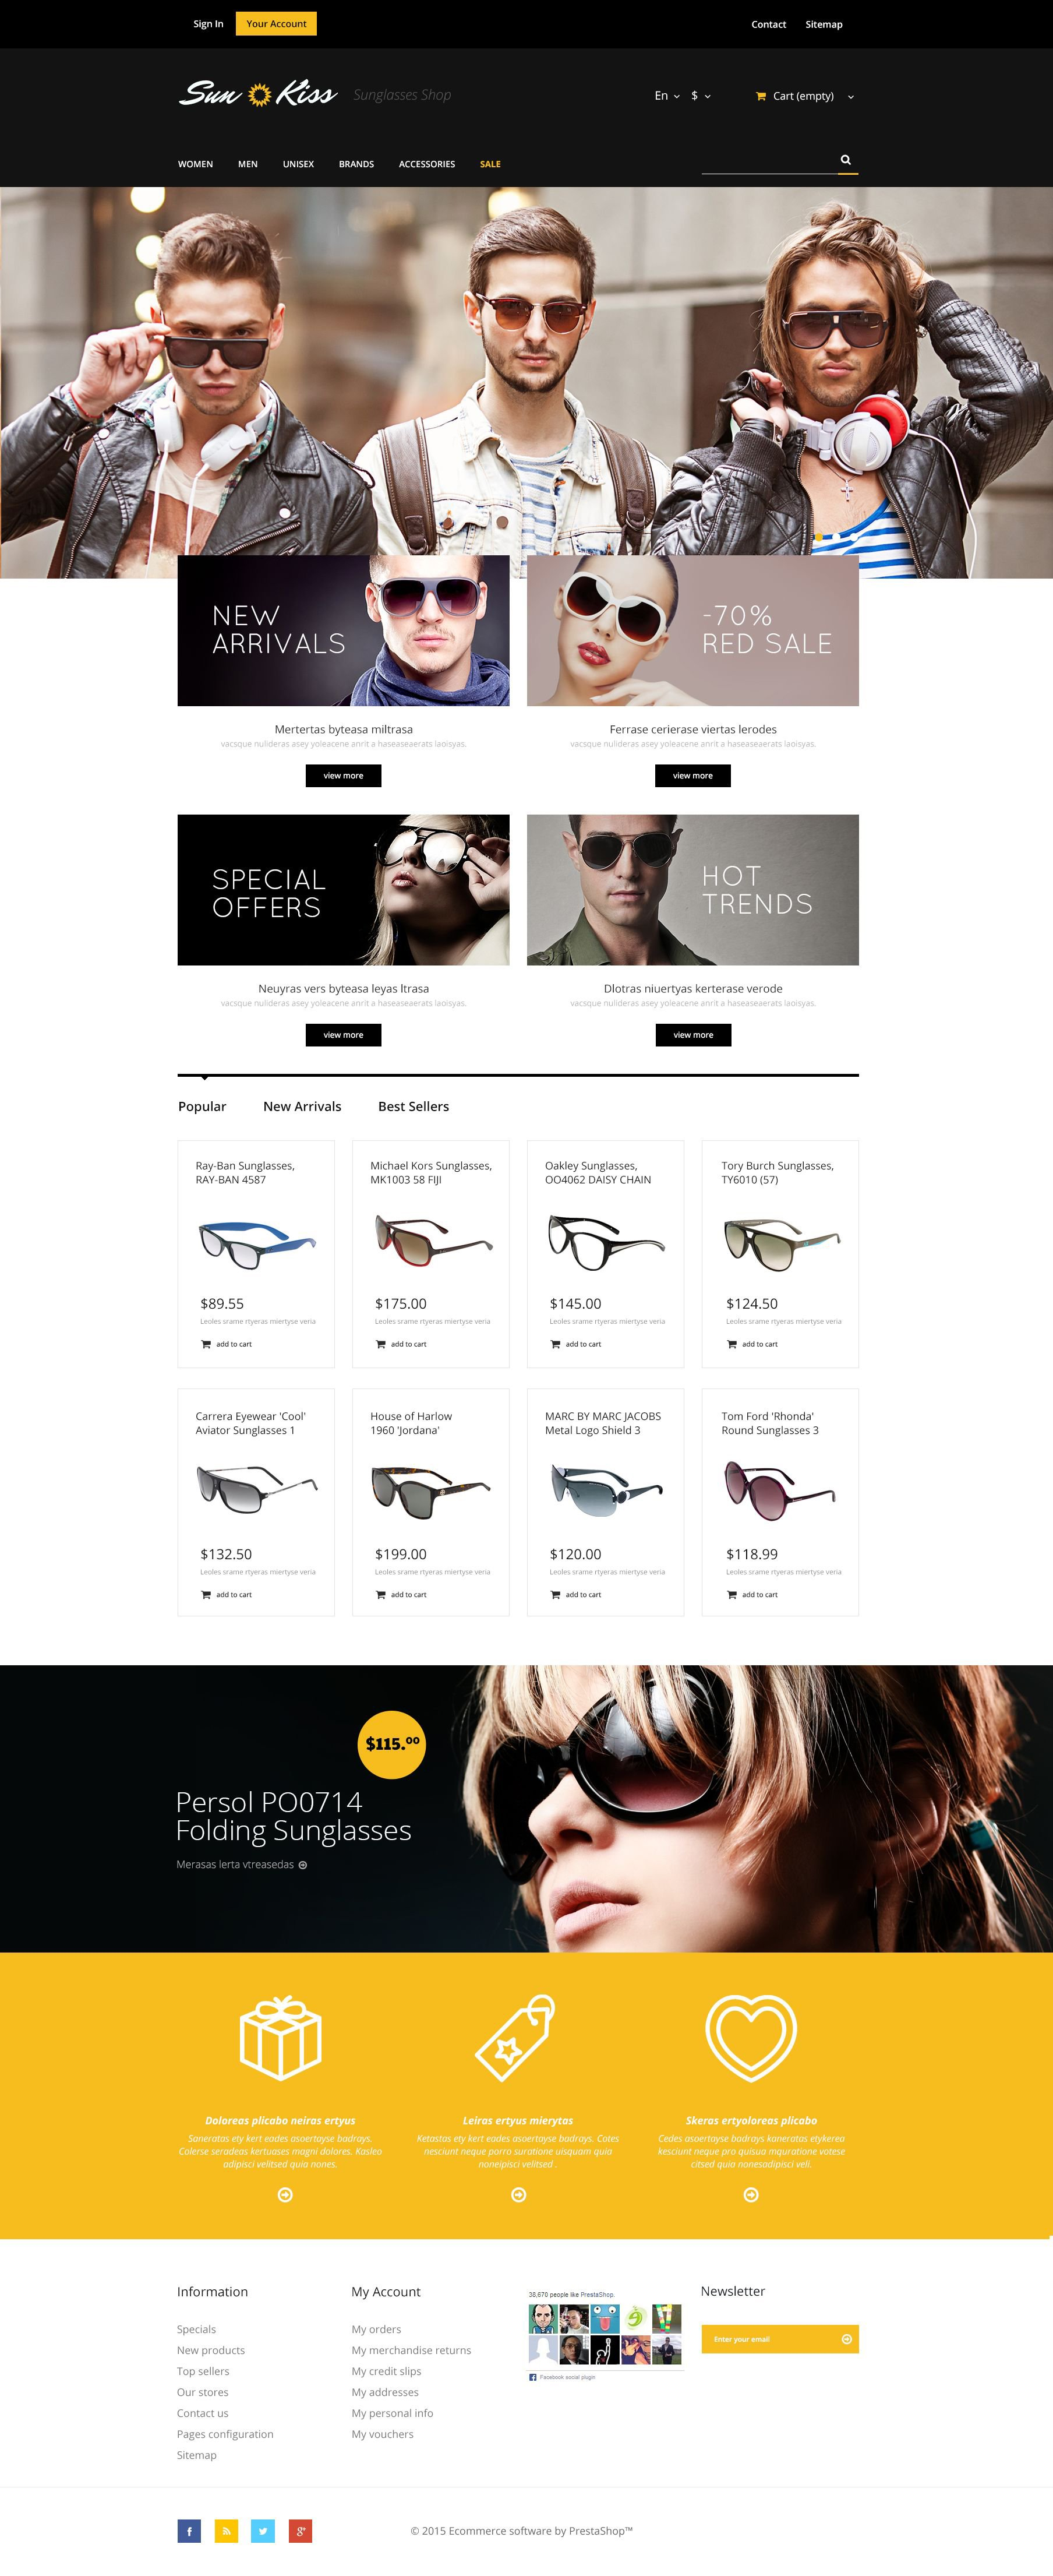 The Sun Kiss PrestaShop Design 53663, one of the best PrestaShop themes of its kind (fashion, most popular), also known as sun kiss PrestaShop template, sunglasses PrestaShop template, accessories PrestaShop template, watches PrestaShop template, umbrellas PrestaShop template, wallets PrestaShop template, clothing PrestaShop template, belts PrestaShop template, jewelry PrestaShop template, necklaces PrestaShop template, rings PrestaShop template, earrings PrestaShop template, eyewear PrestaShop template, dresses PrestaShop template, shoes PrestaShop template, sandals PrestaShop template, handbags PrestaShop template, hair PrestaShop template, carves PrestaShop template, hats and related with sun kiss, sunglasses, accessories, watches, umbrellas, wallets, clothing, belts, jewelry, necklaces, rings, earrings, eyewear, dresses, shoes, sandals, handbags, hair, carves, hats, etc.